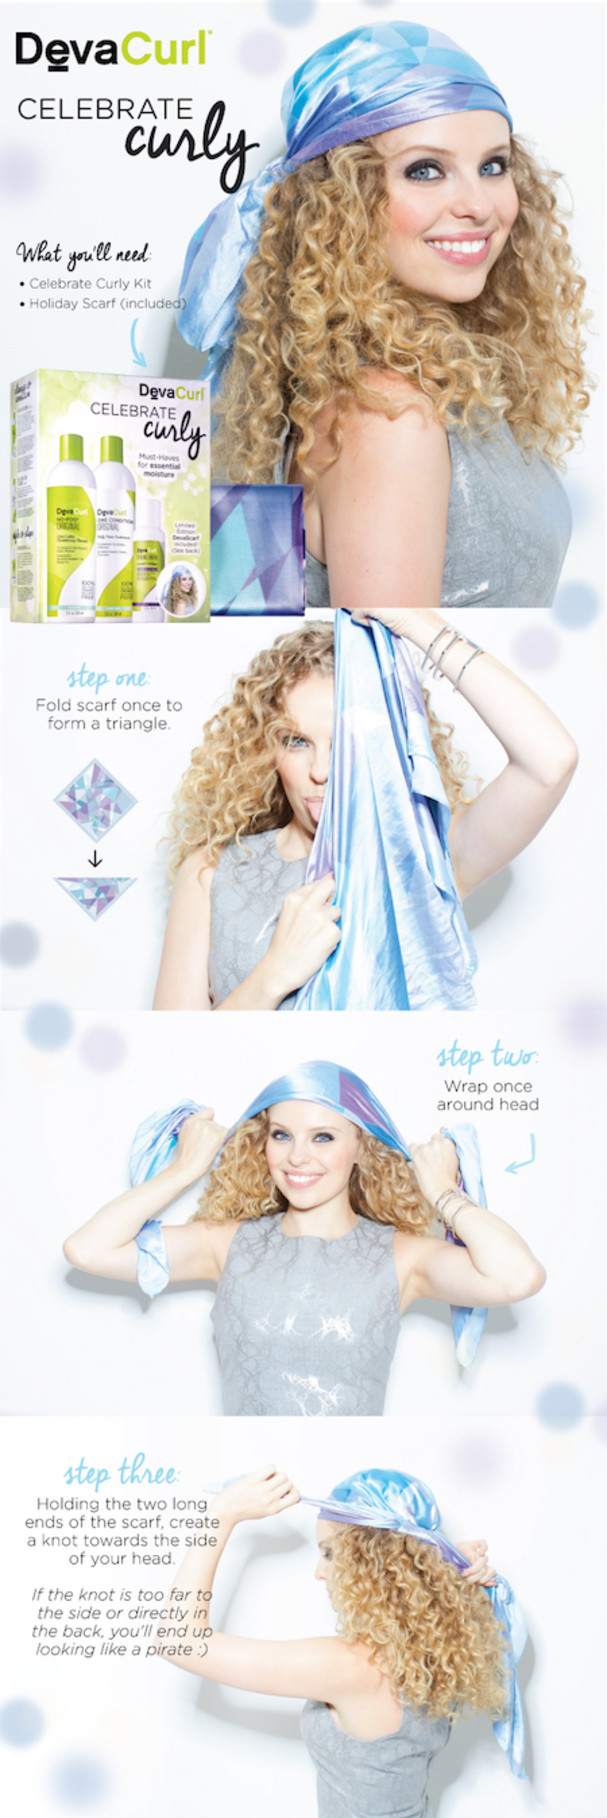 3 Different Styles Of Head Scarves For Curly Hair Devacurl